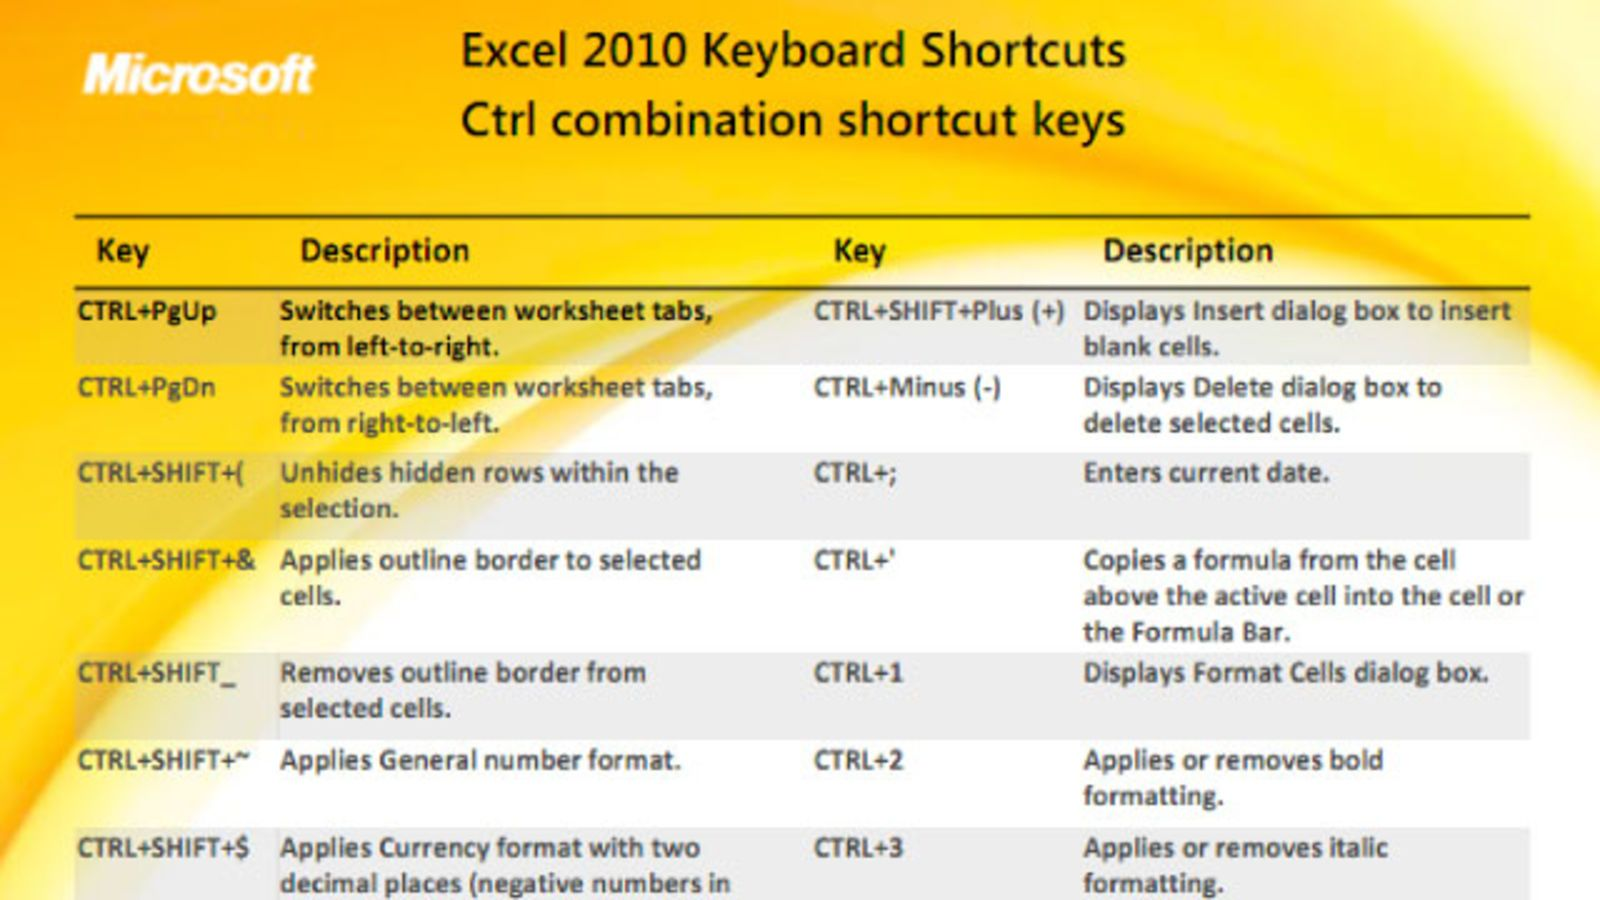 Quick Reference Cards Show All the Excel 2010 Keyboard